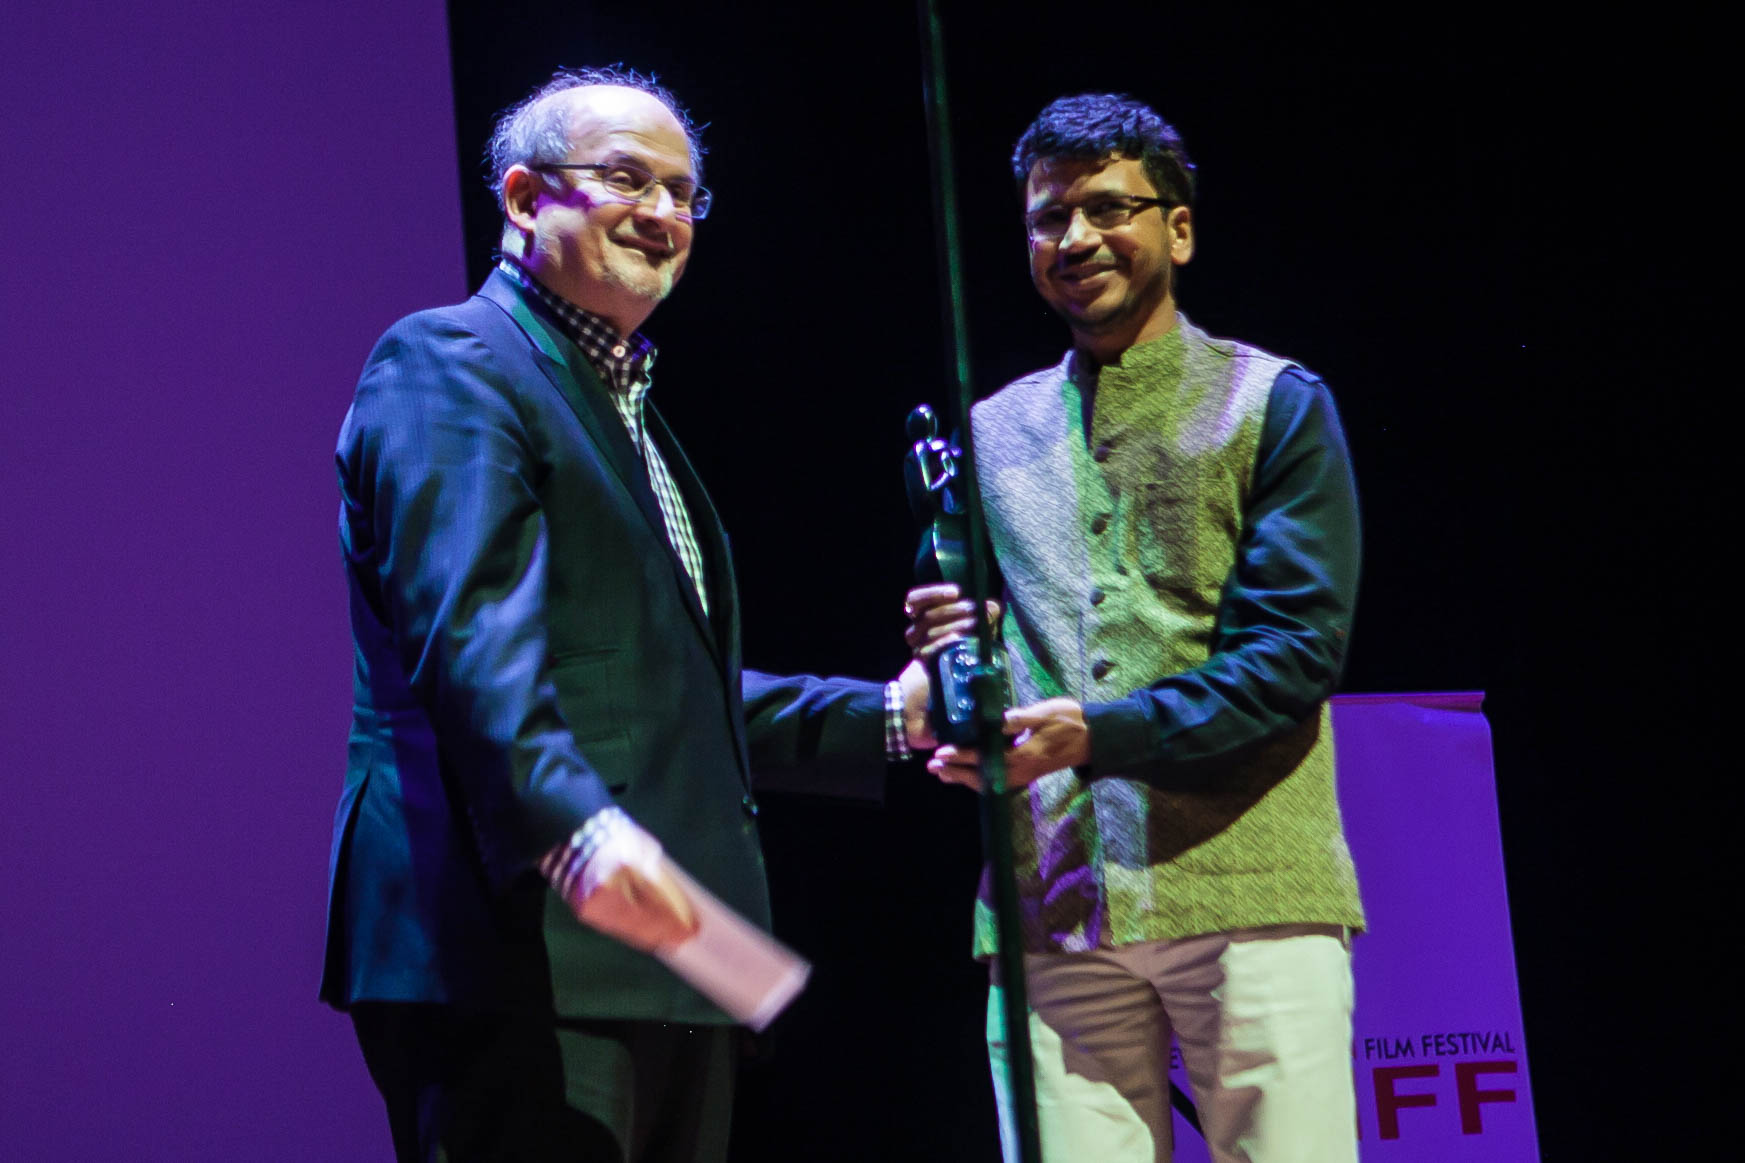 Photo Caption: Salman Rushdie presenting the award for Best Film accepted by Umesh Vinayak Kulkarni for HIGHWAY who also won Best Director for the film. (Photo credit: Mo Pitz)